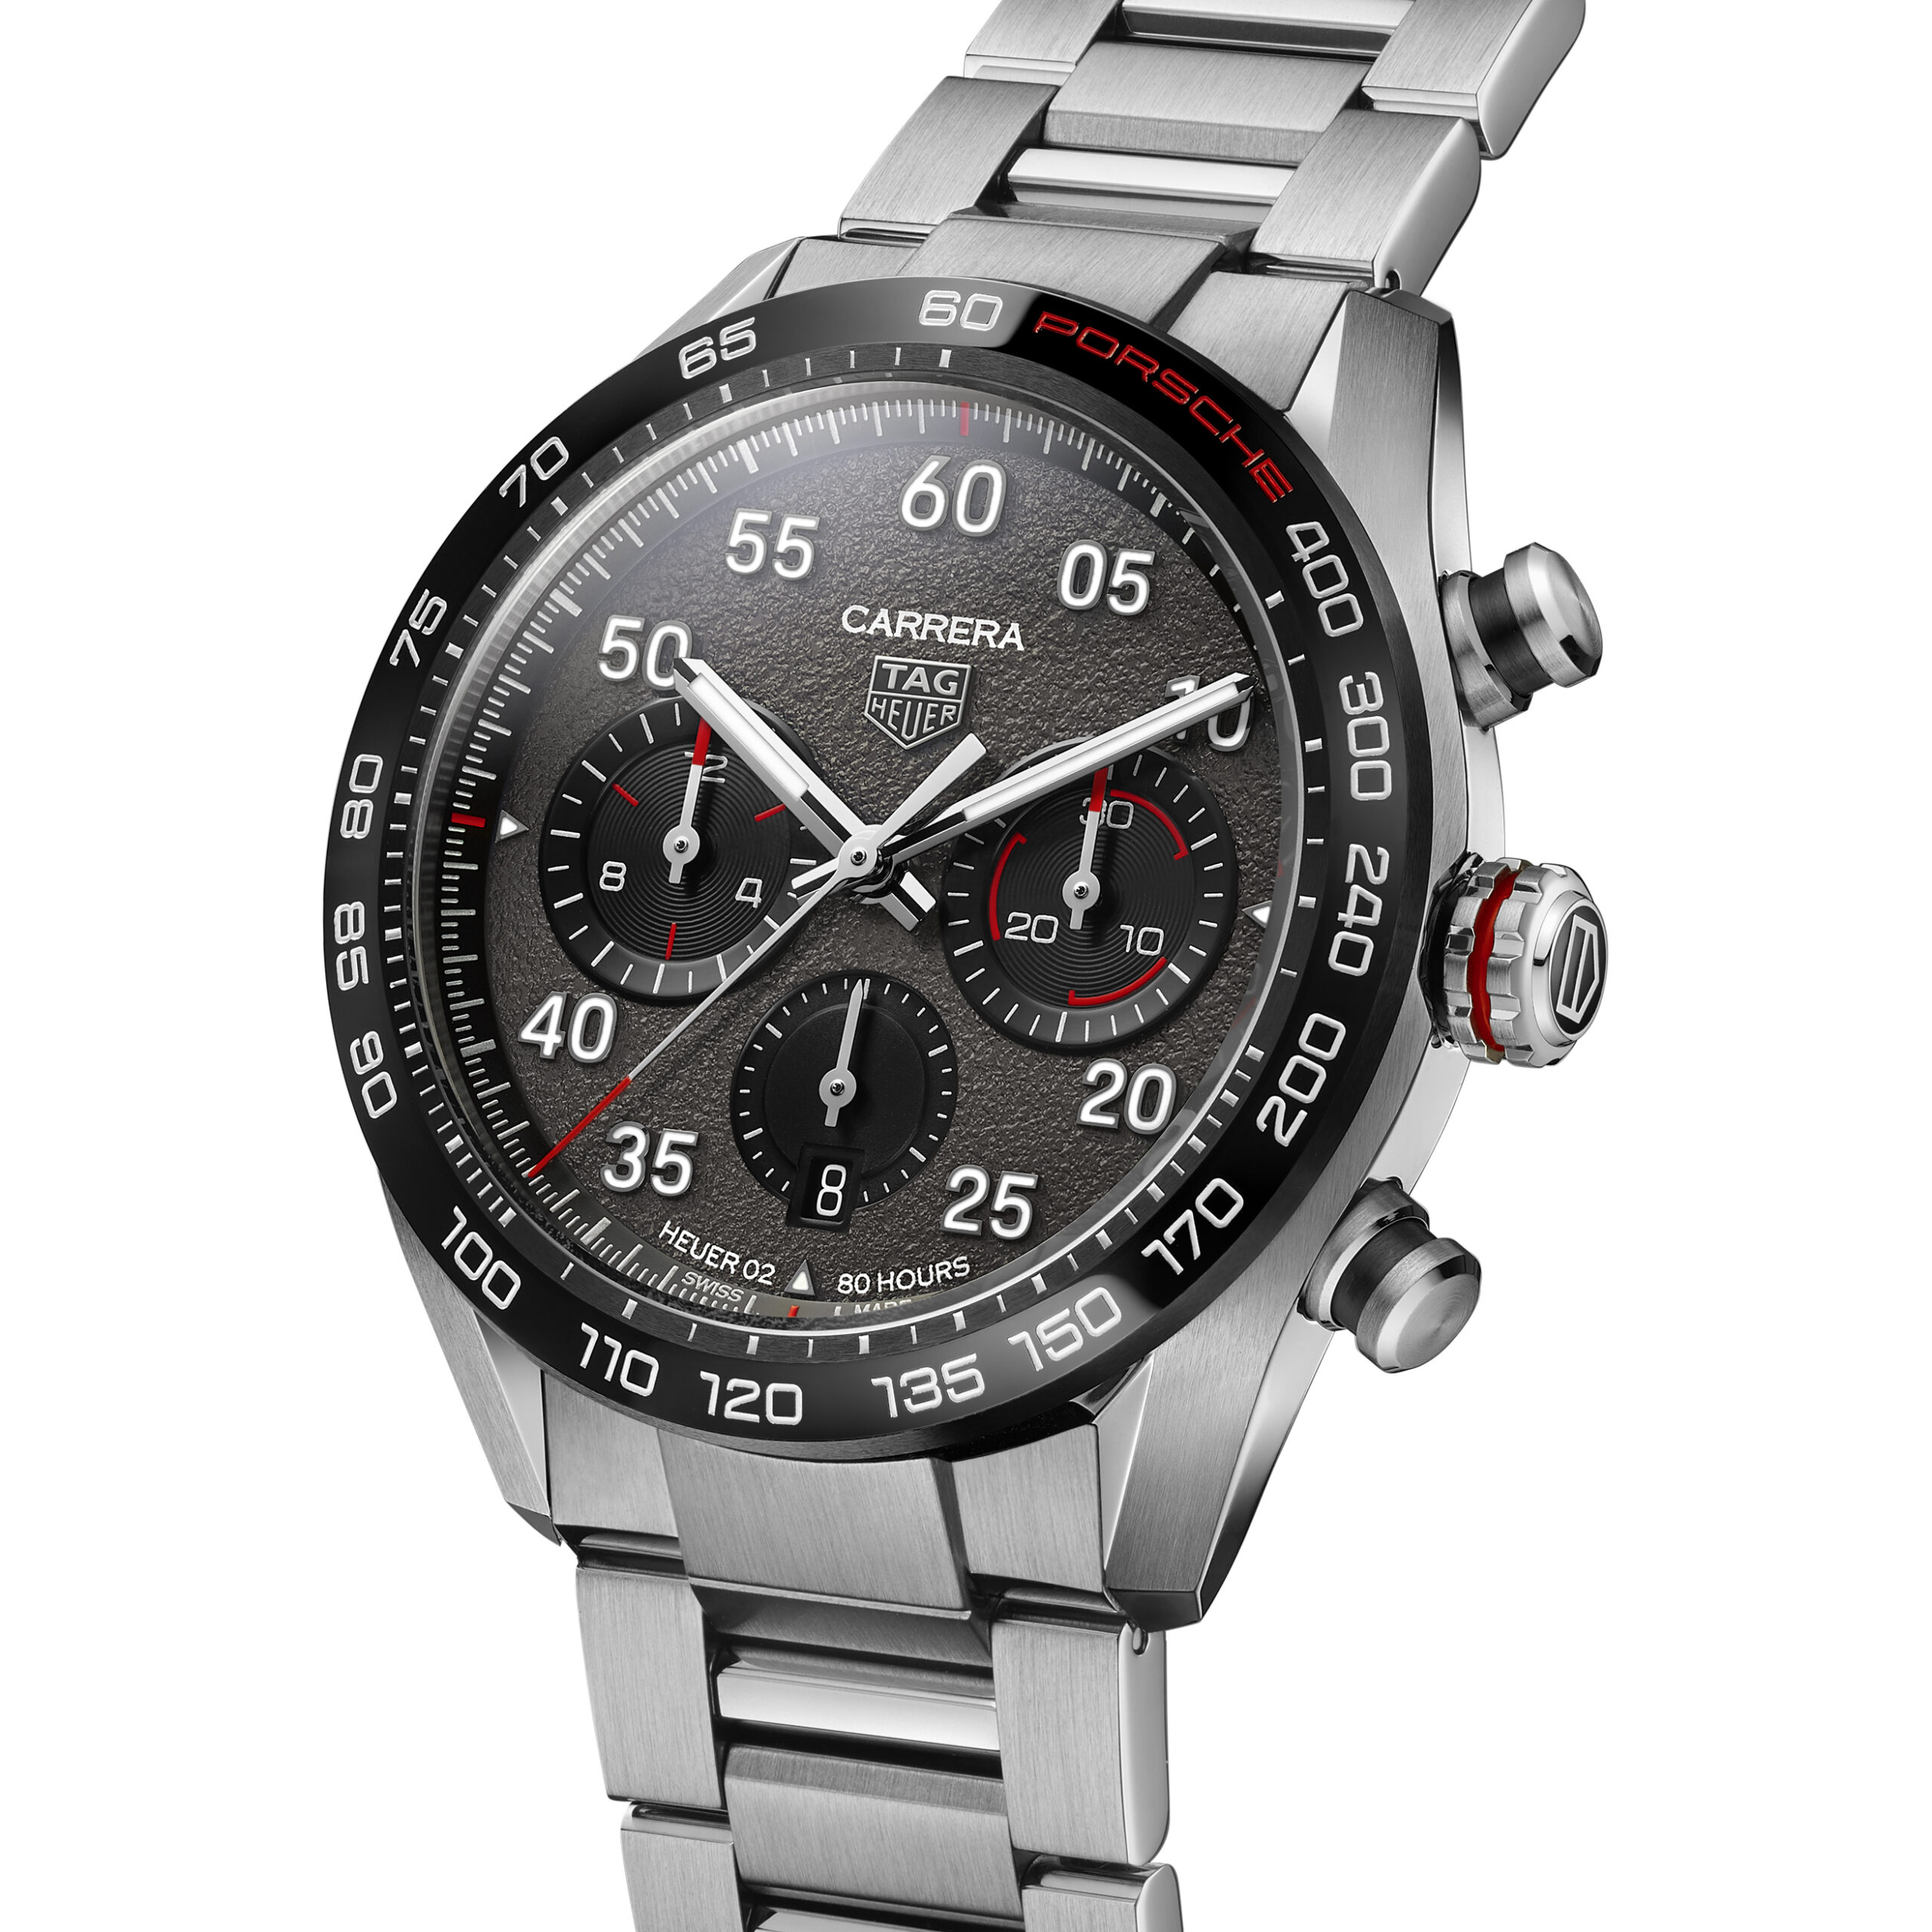 TAG Heuer Carrera Porsche Chronograph for 360 Magazine